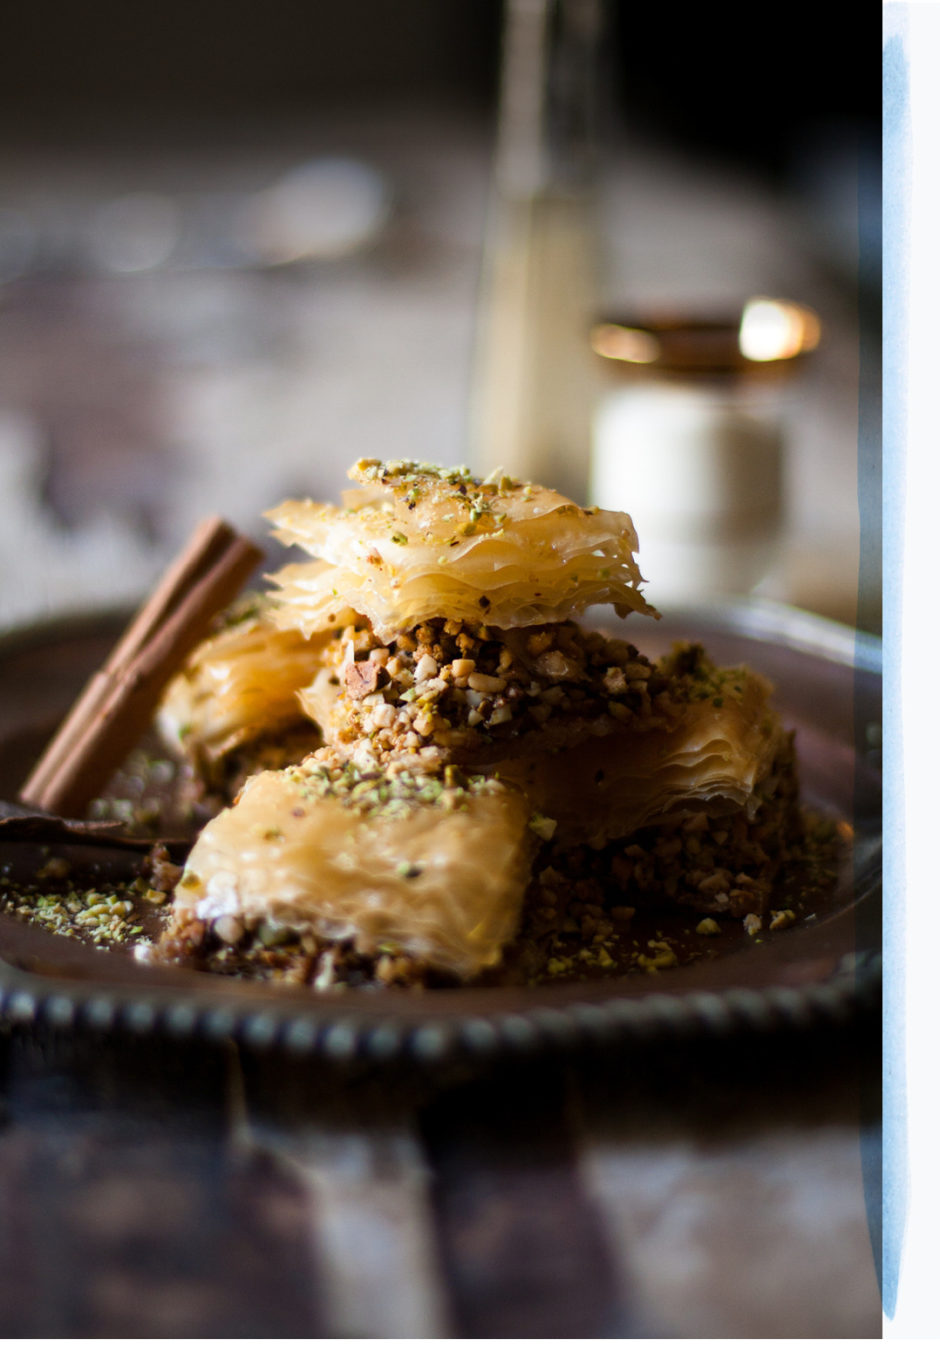 Pistachio & Almond Baklava with Elderflower Syrup. Rich, sweet and simply delicious!